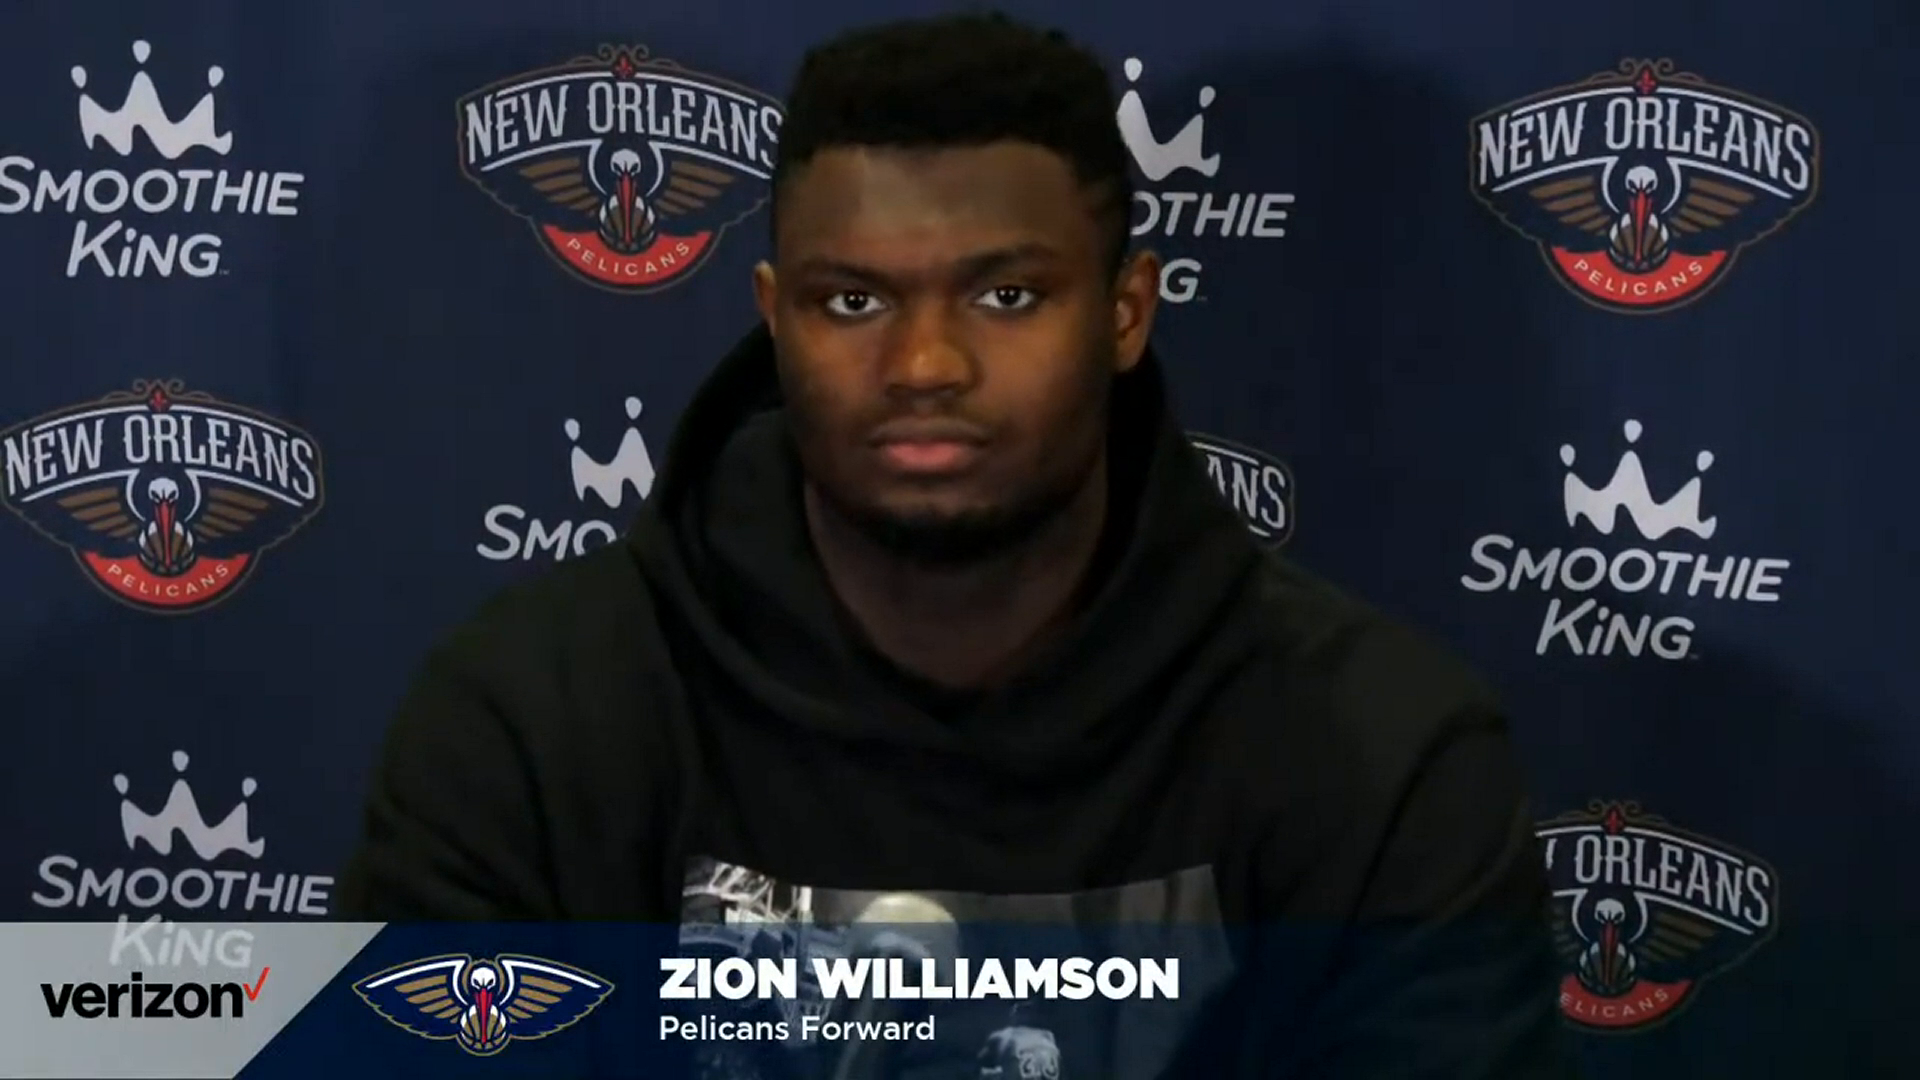 Pelicans-Knicks Postgame Interview: Zion Williamson 4-18-21